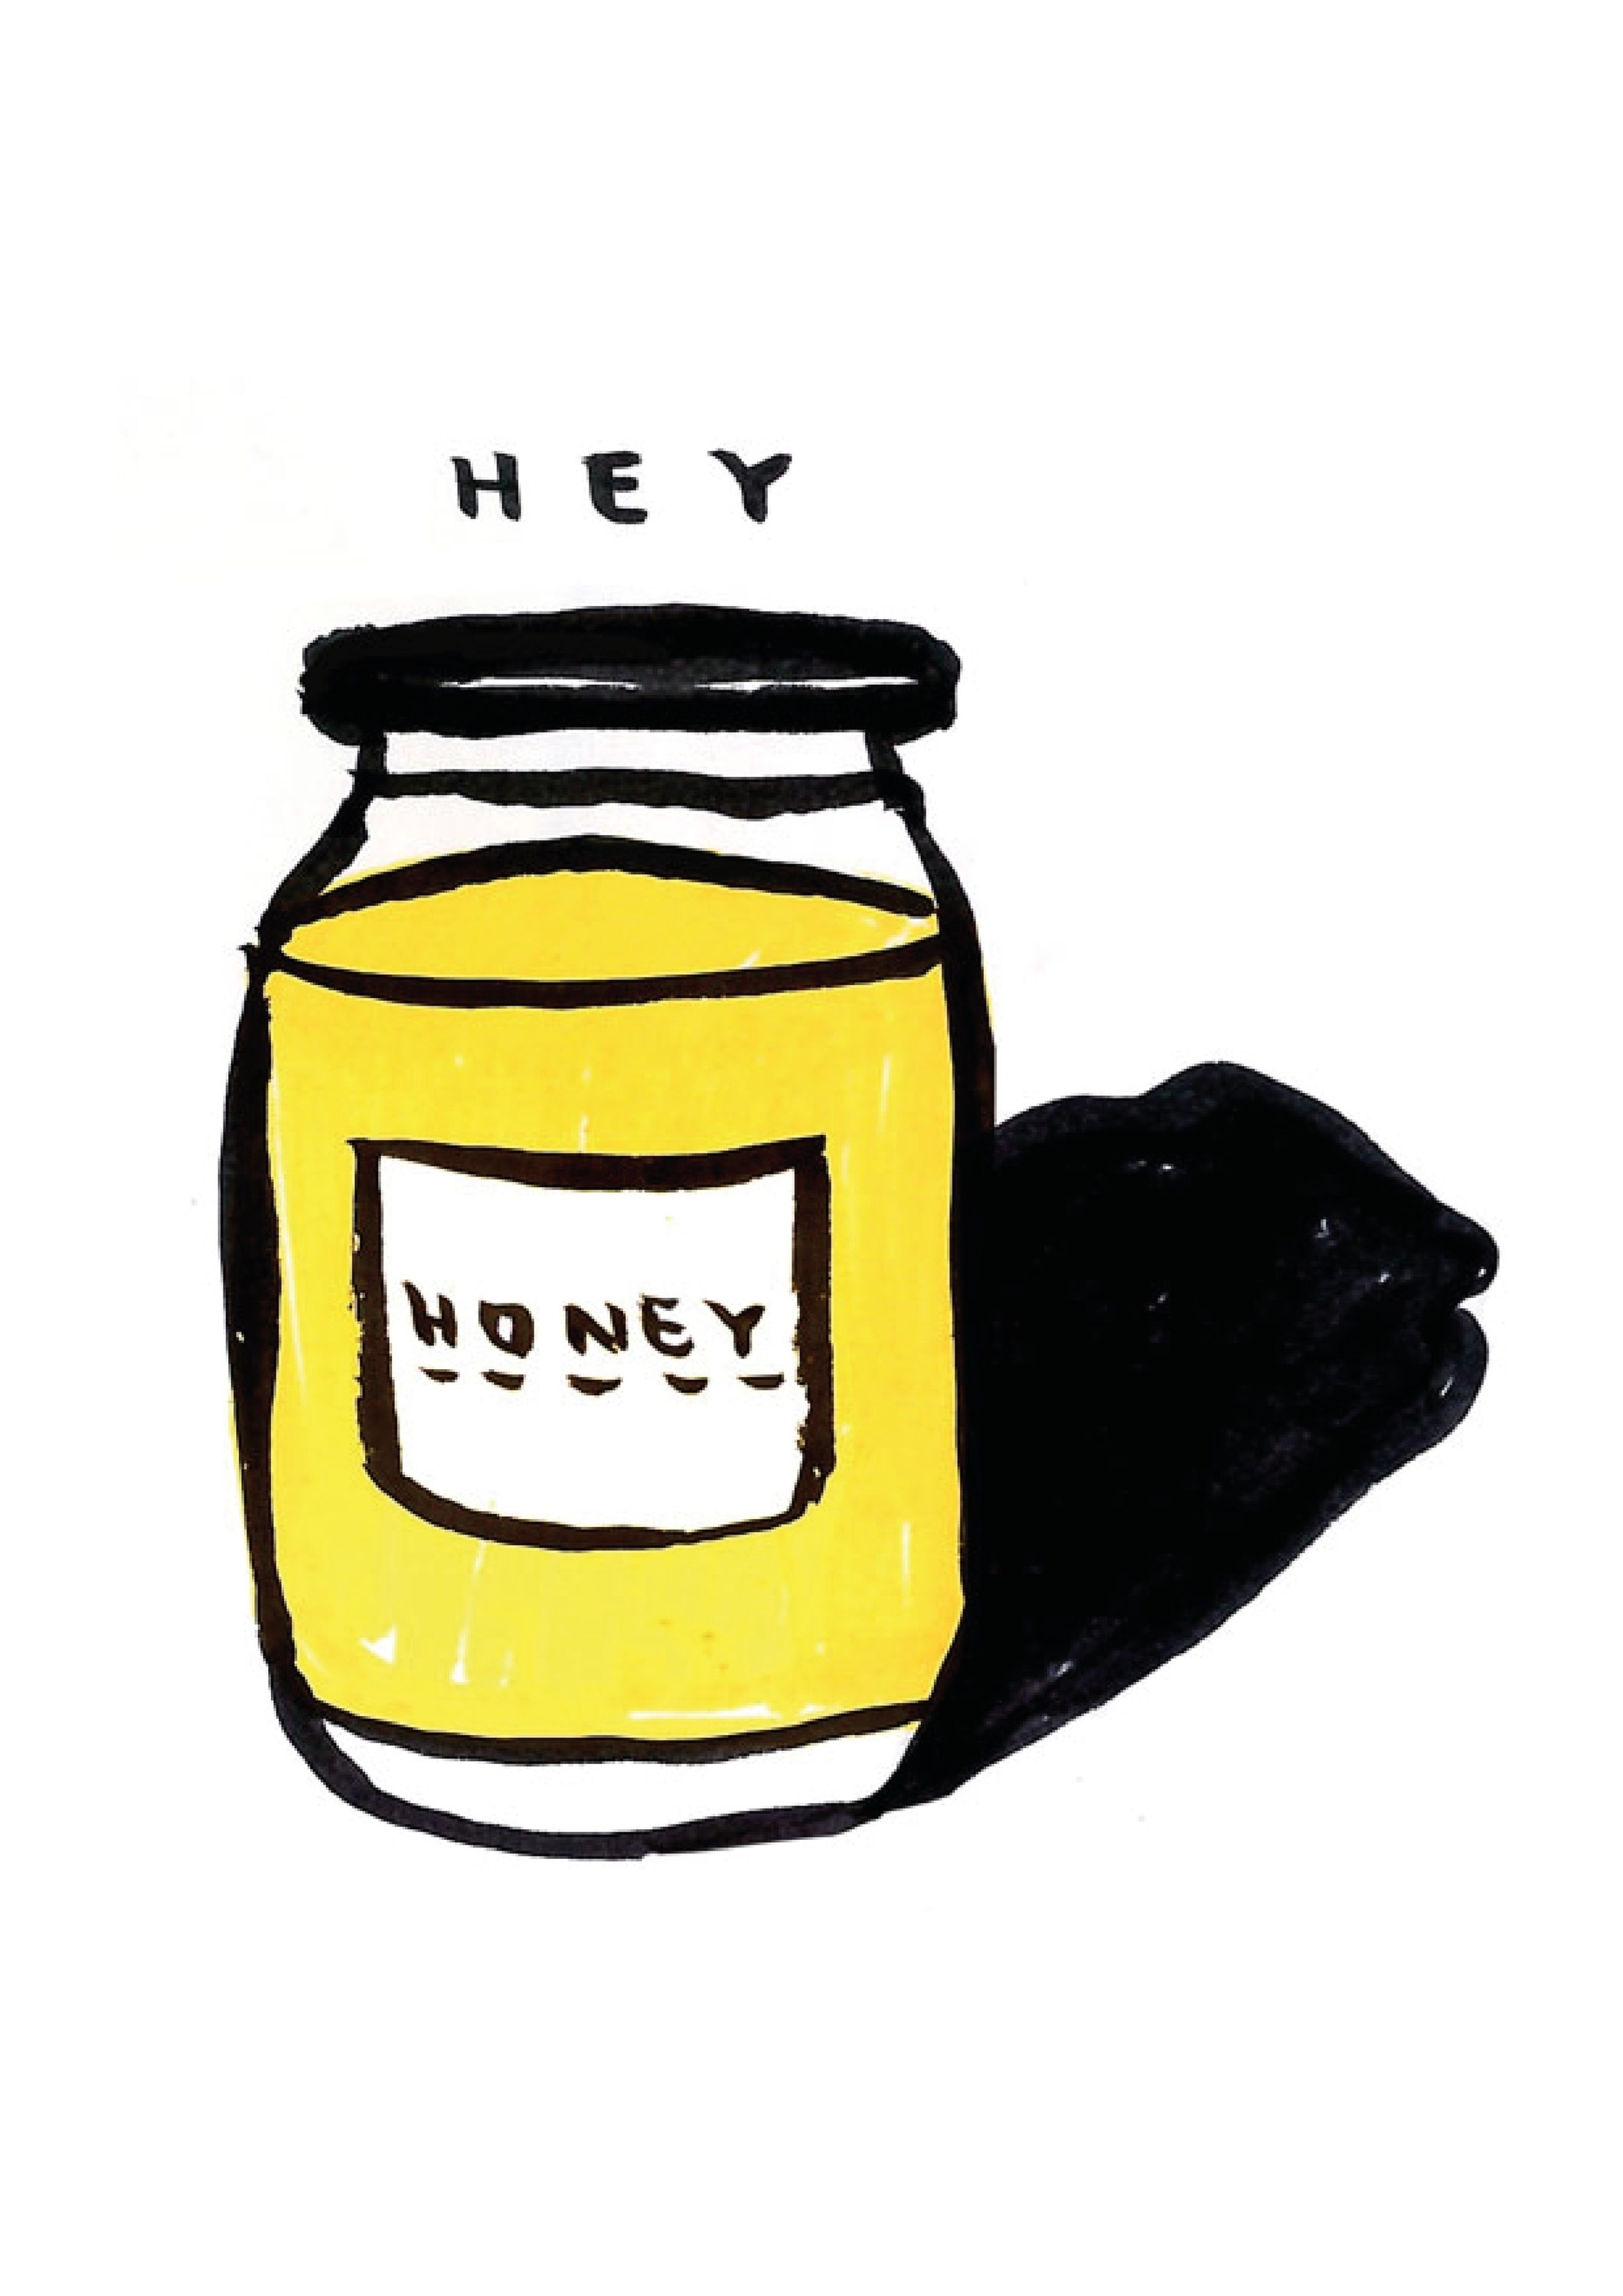 Honey, original Minimalist Digital Drawing and Illustration by Shut Up  Claudia